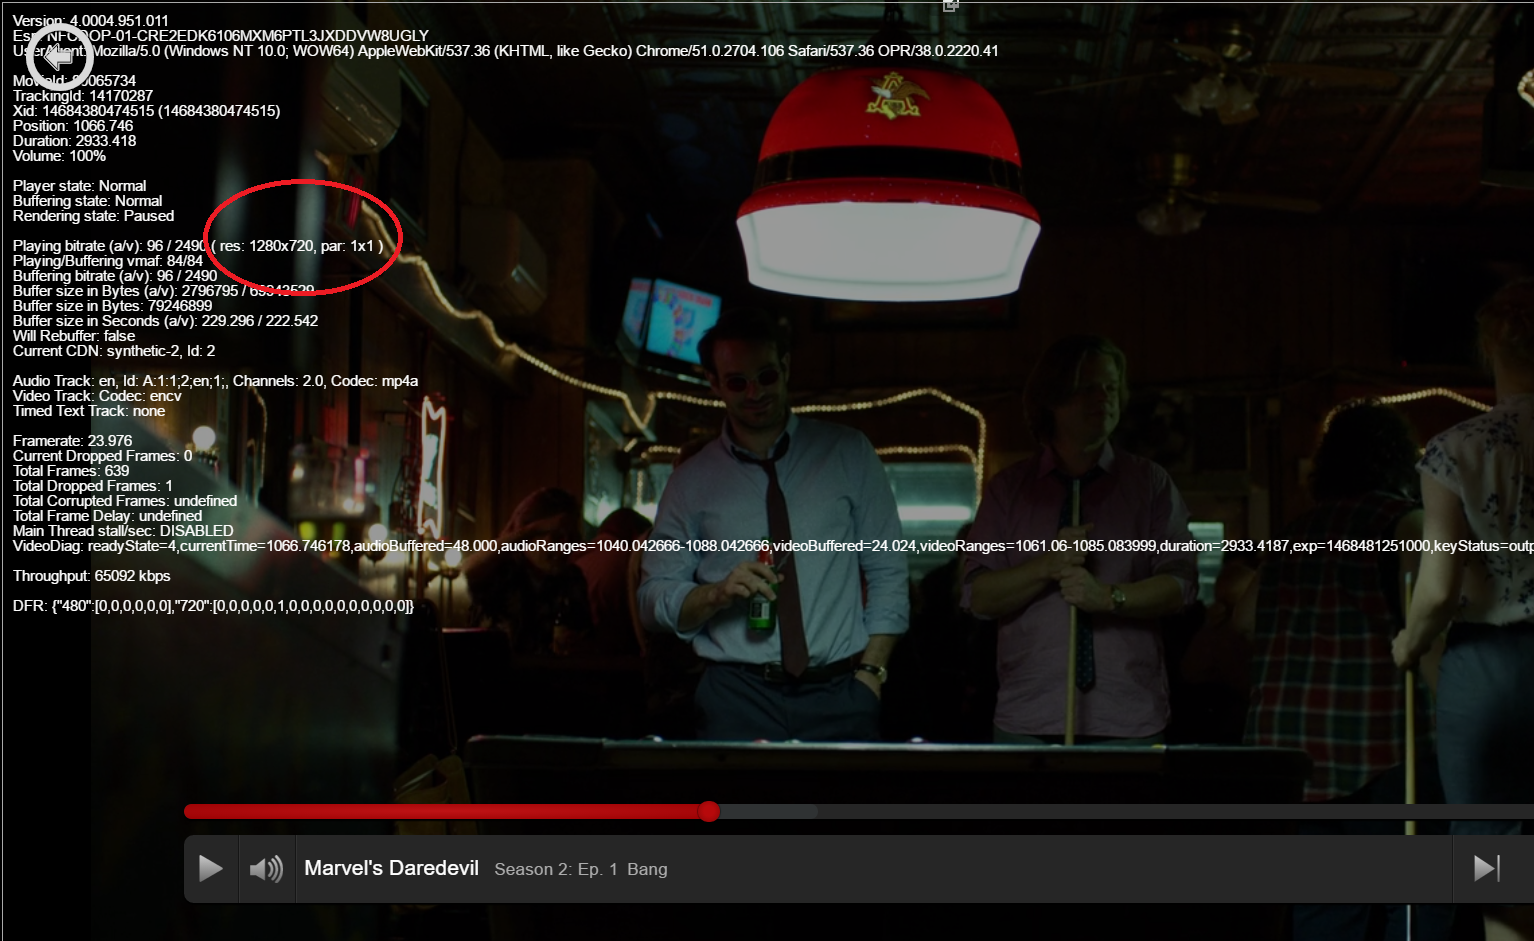 Confirmed: Only Microsoft Edge will play Netflix content at 1080p on